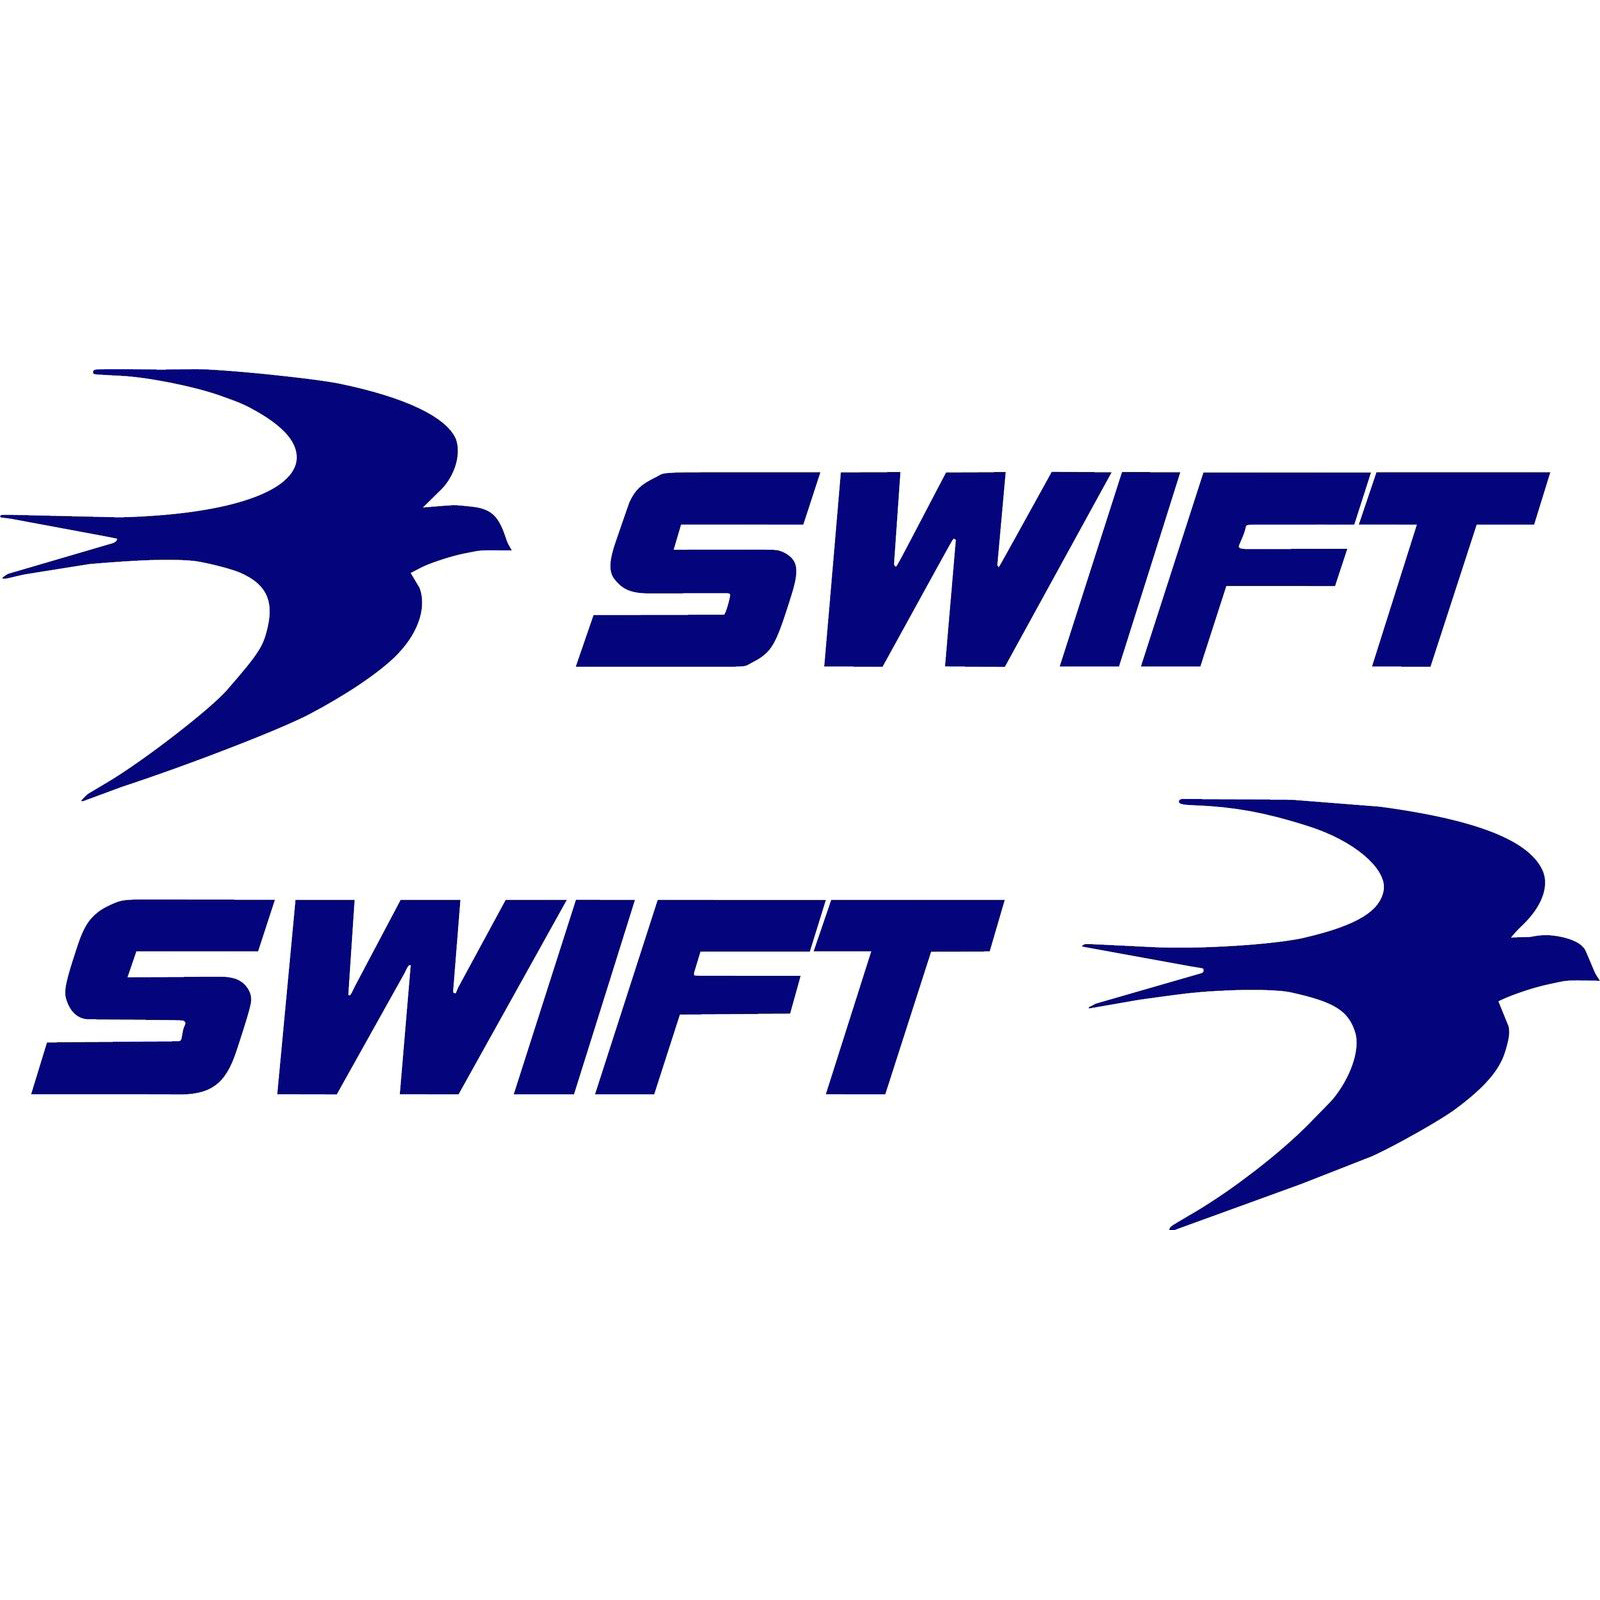 Lastest  Brands And Models  Swift Owners Club  Homepage Swift Group Caravans And Motorhomes Below We List The Main Brands And Model Ranges Owned By The Swift Group Click On The Logo To Visit The Website Abbey, Ace  Caravaners